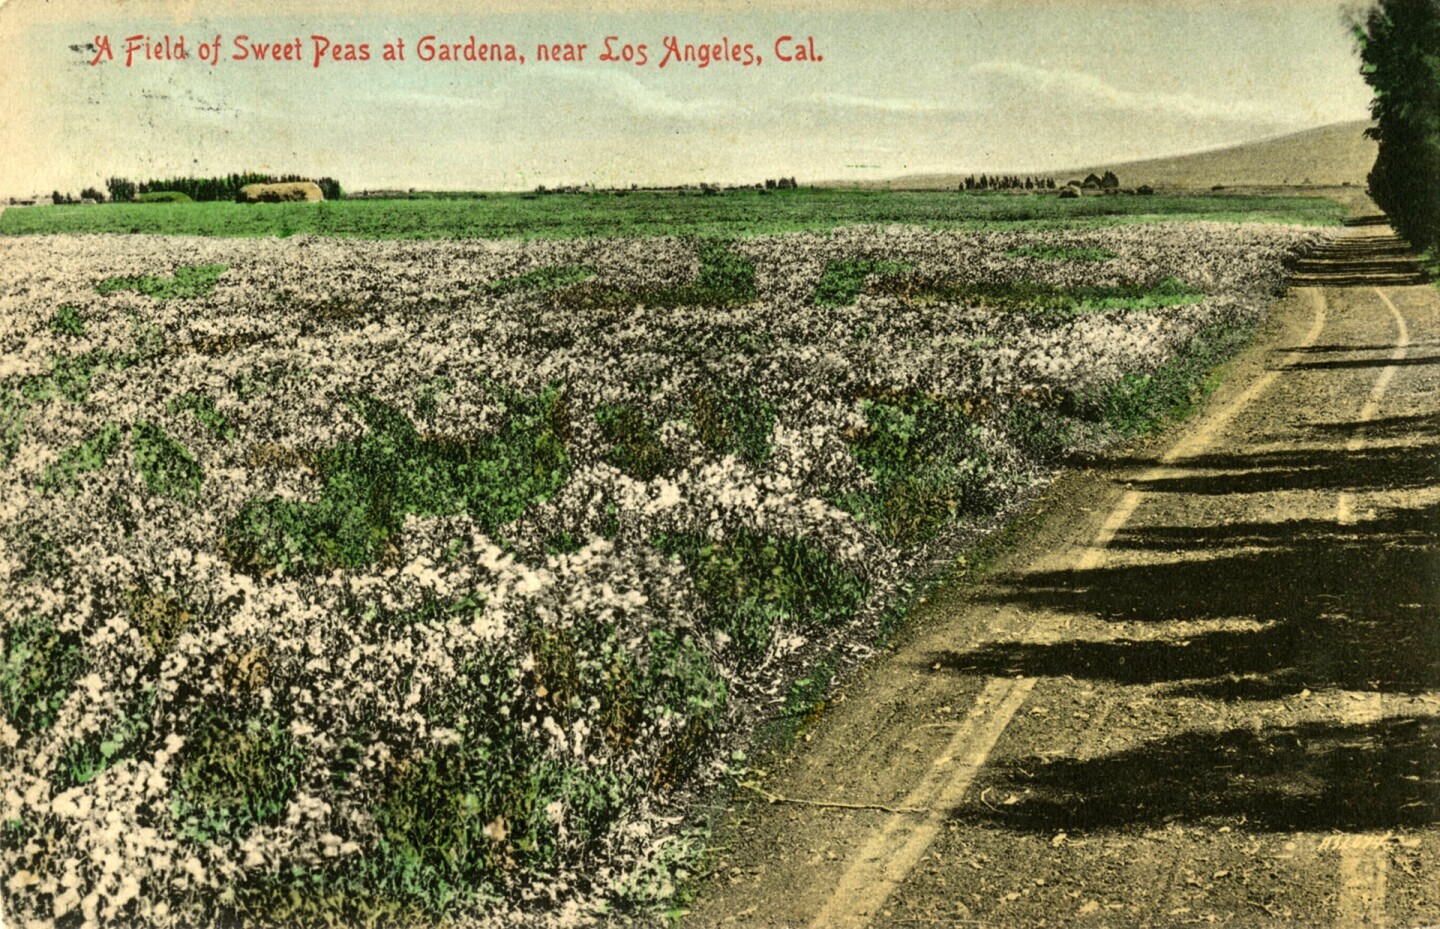 A field of sweet peas in Gardena. Courtesy of the CSUDH Archives.